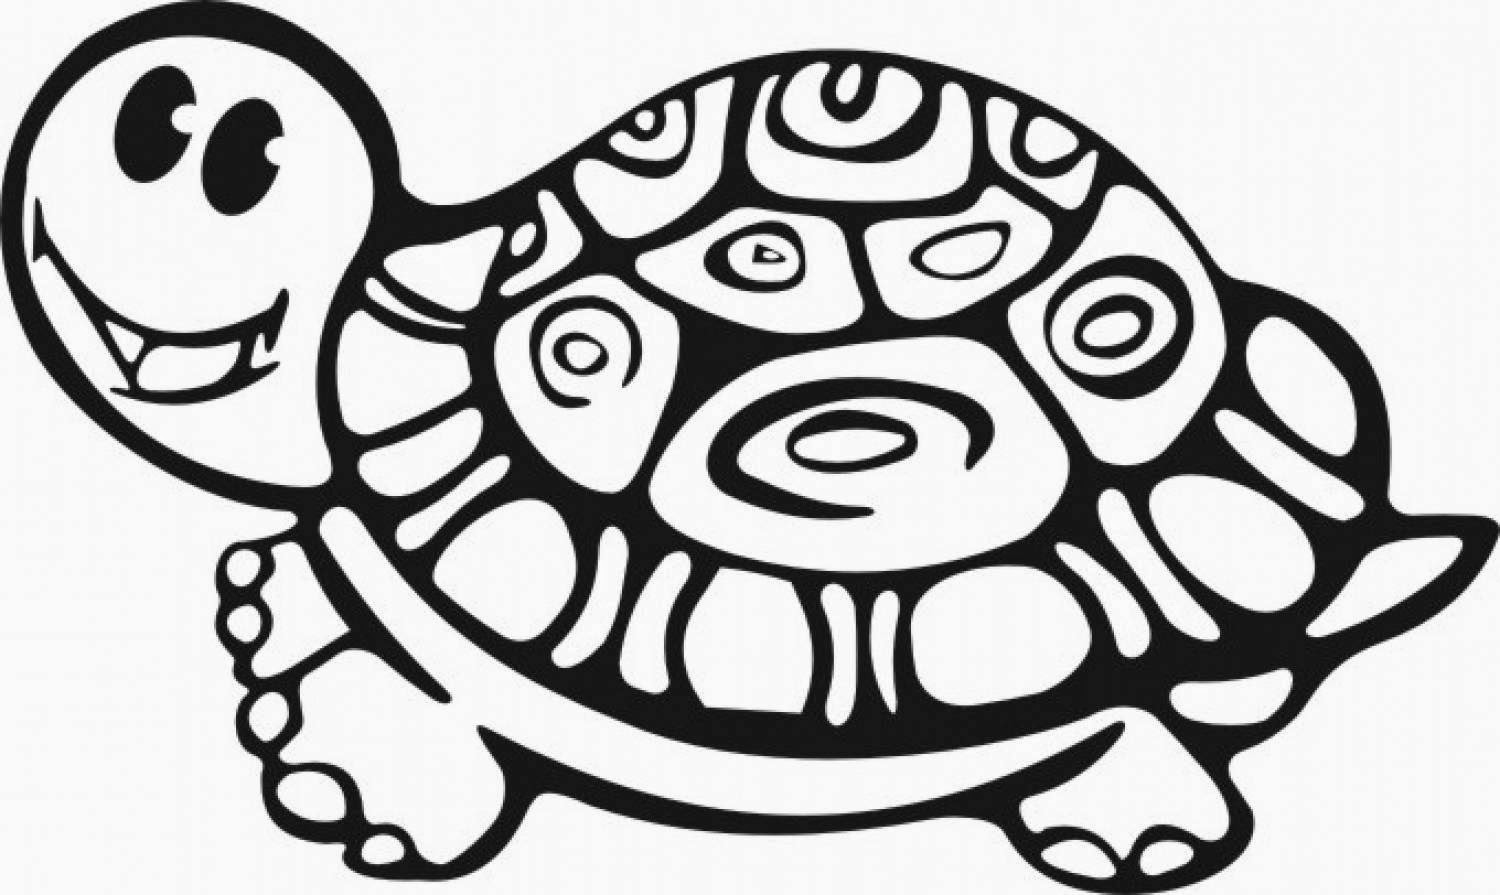 turtles colouring kicko coloring pages learny kids colouring turtles